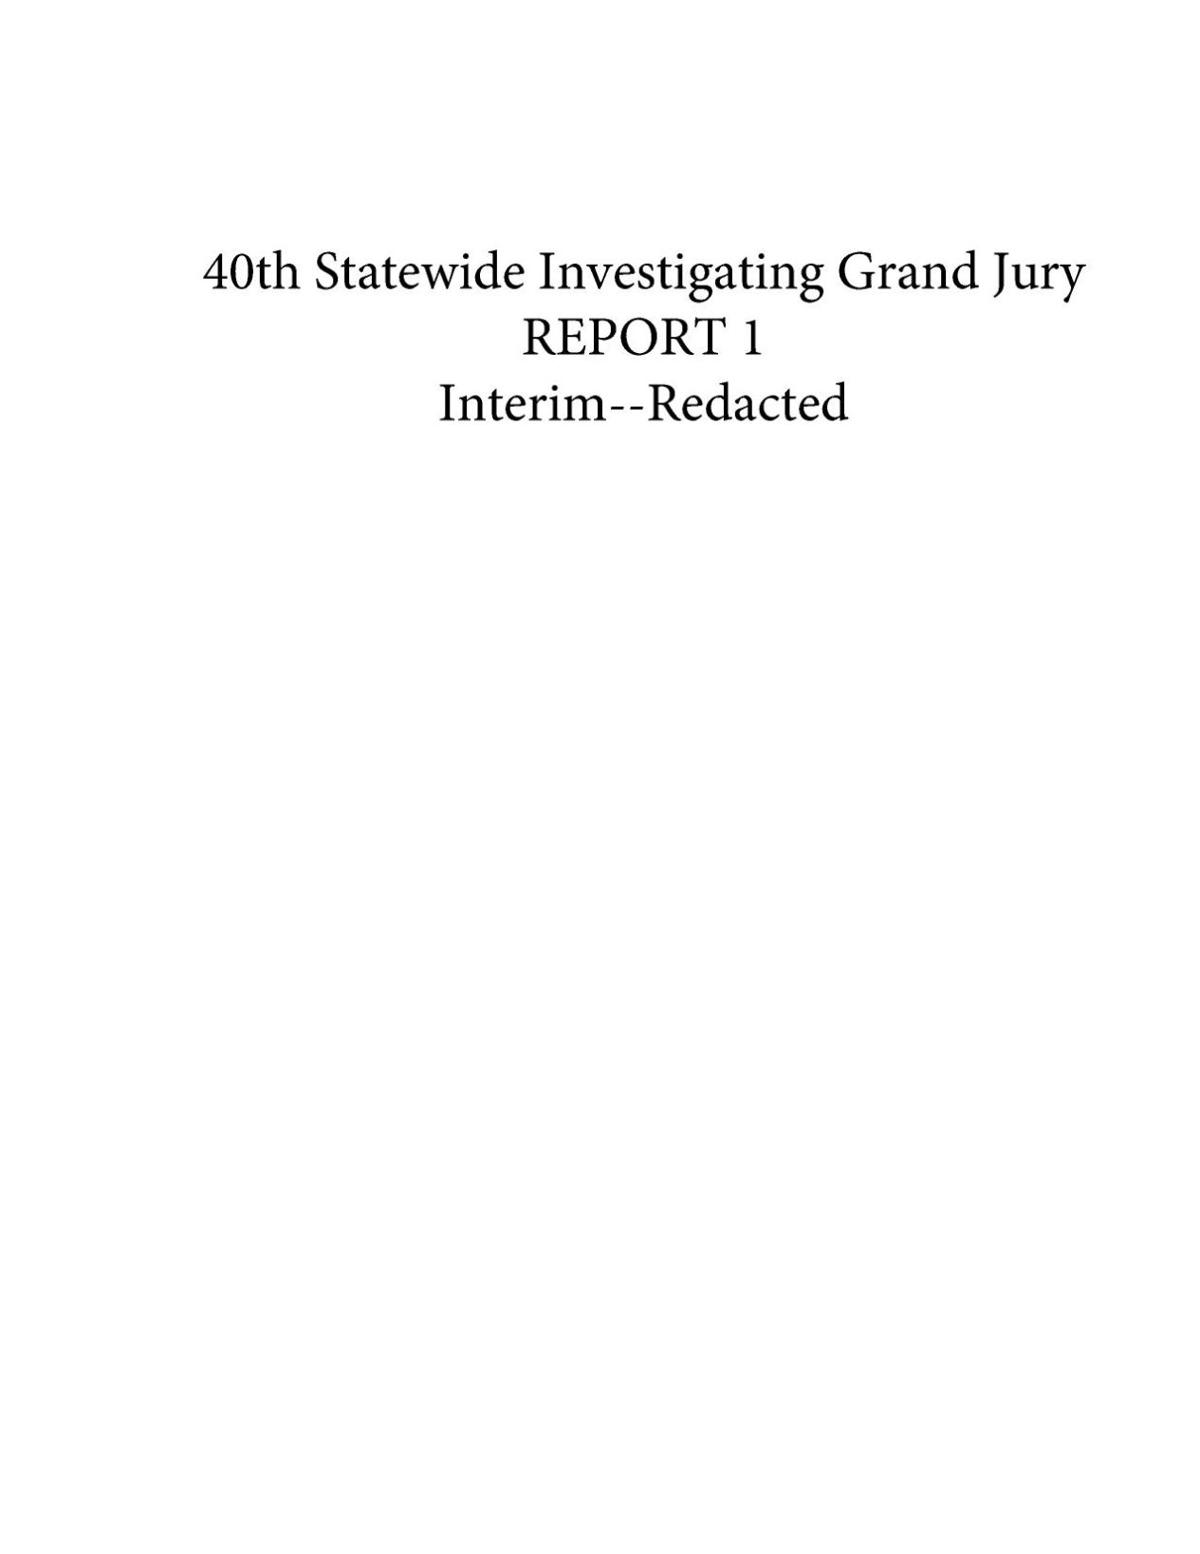 Pennsylvania Statewide Grand Jury Investigation of Abuse at Catholic Dioceses